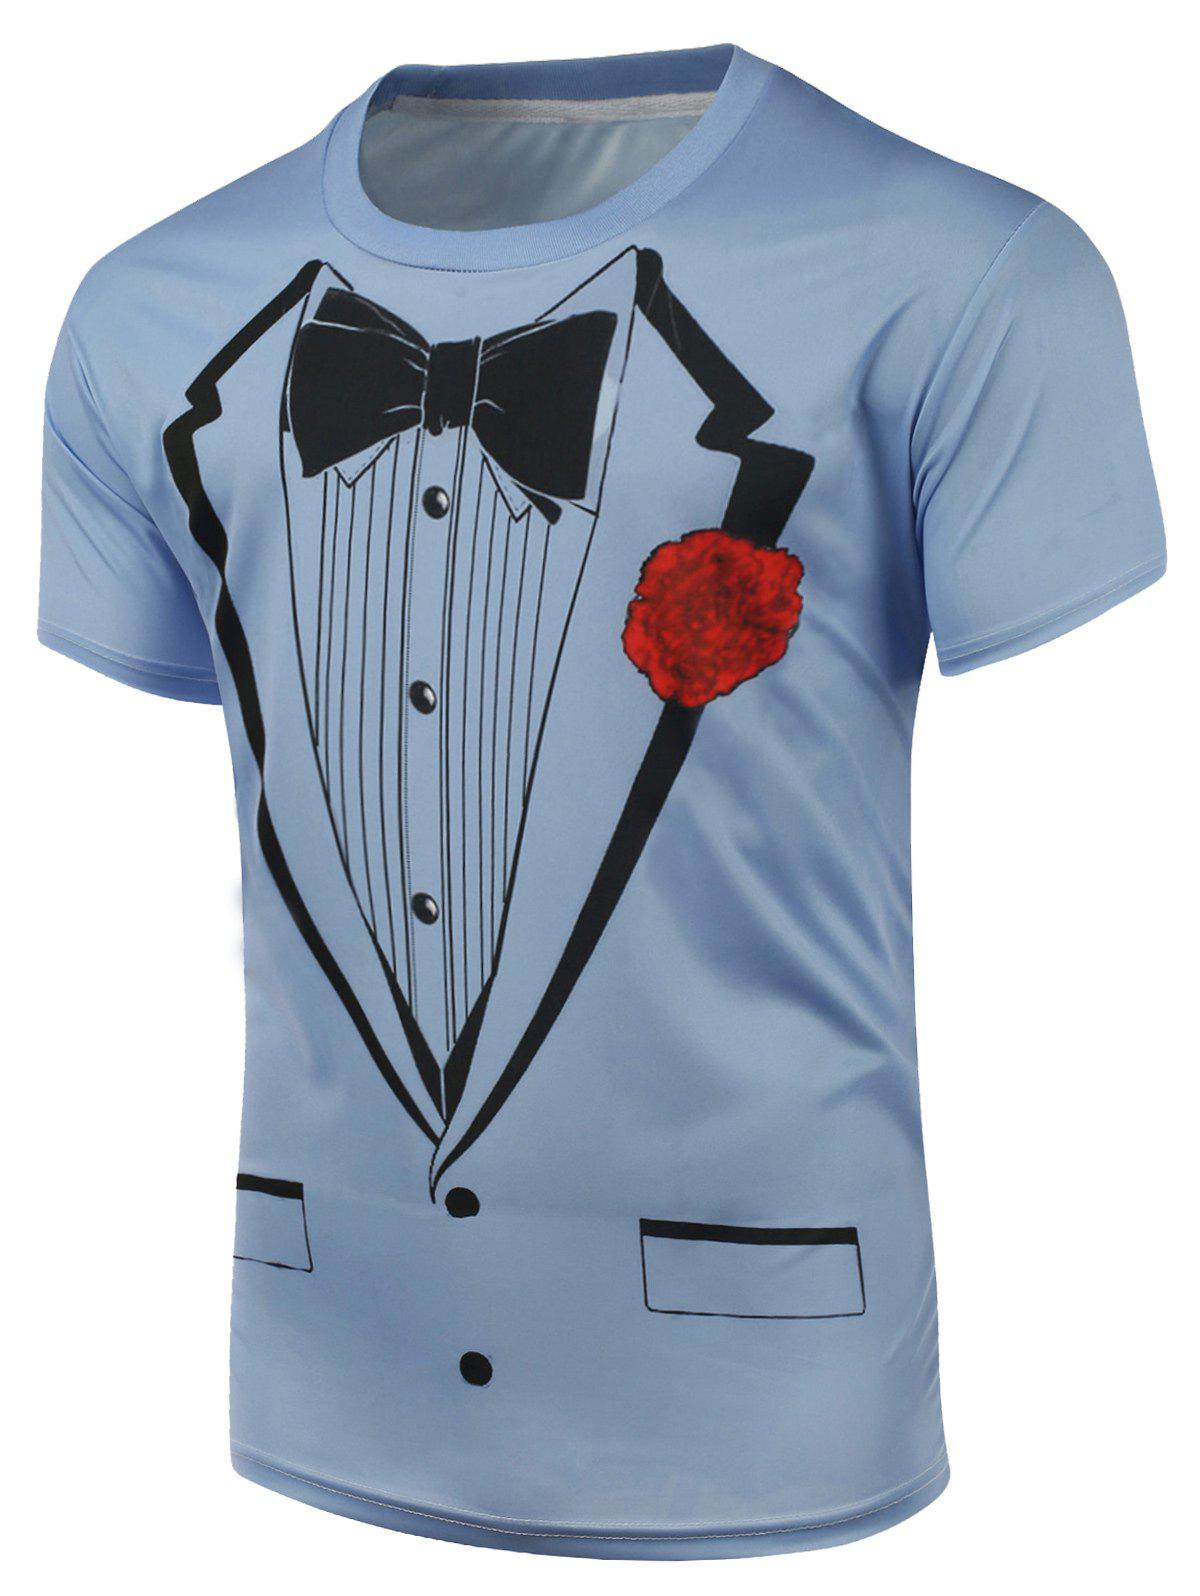 Short Sleeve Bow Tie and Floral Print T-Shirt - BLUE S